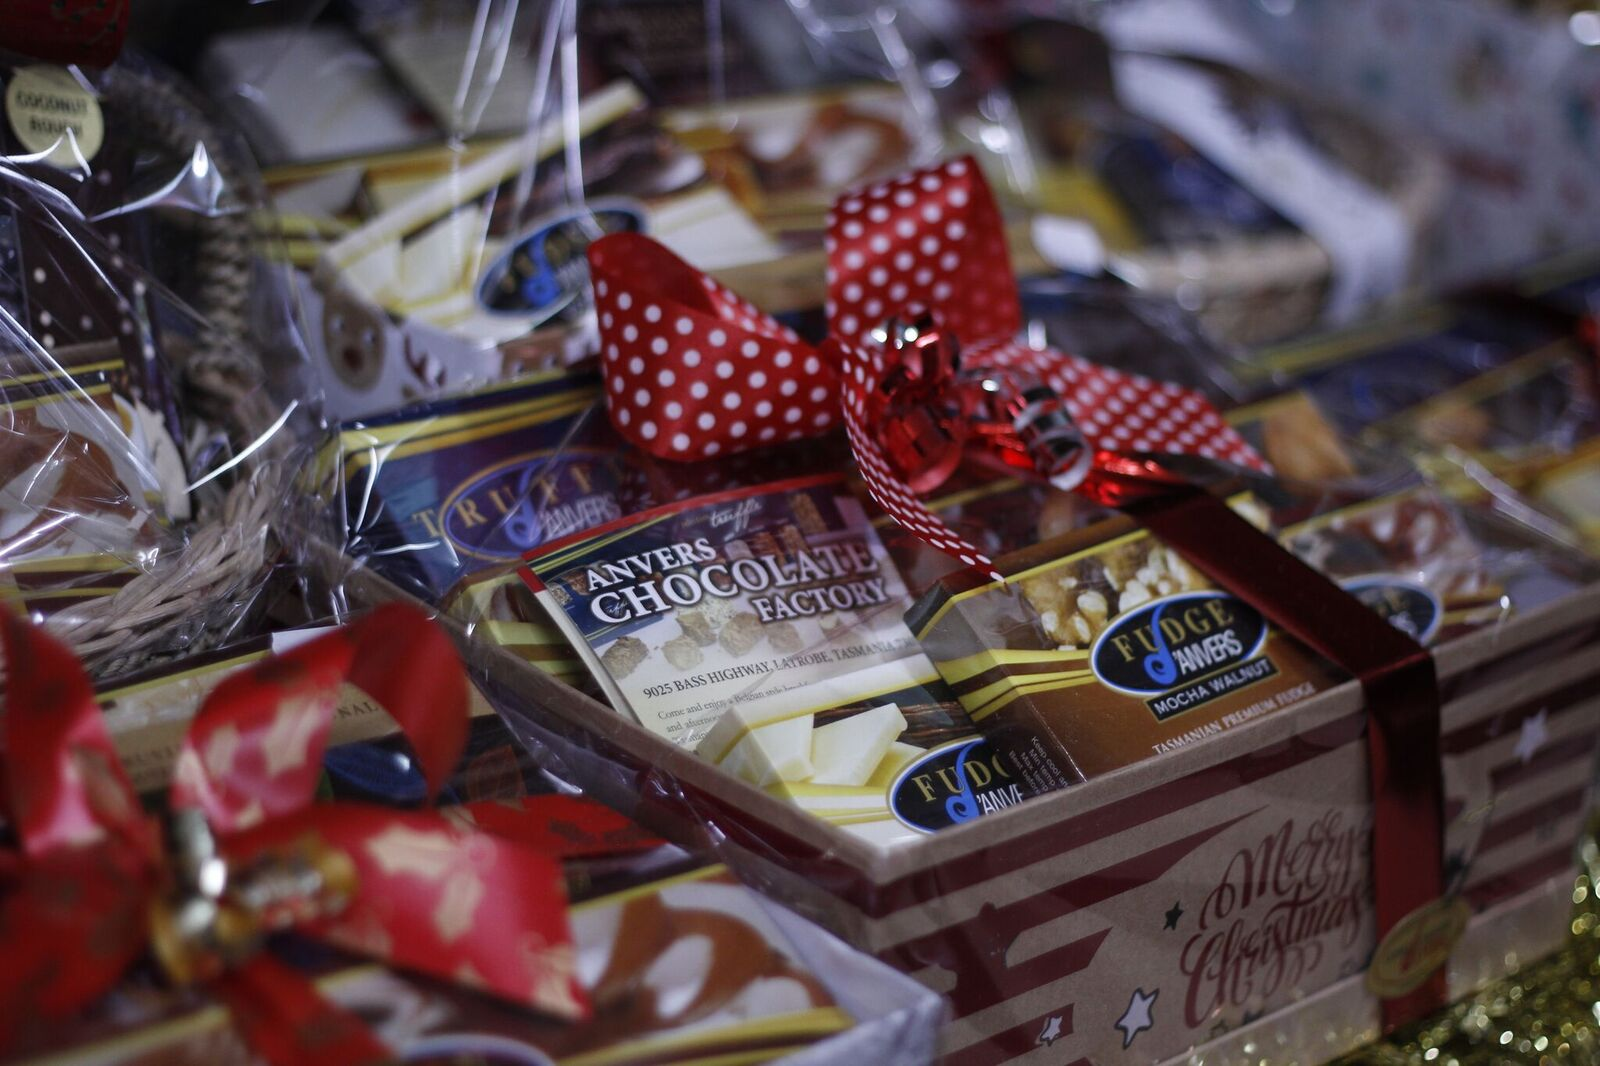 House of Anvers gift hampers